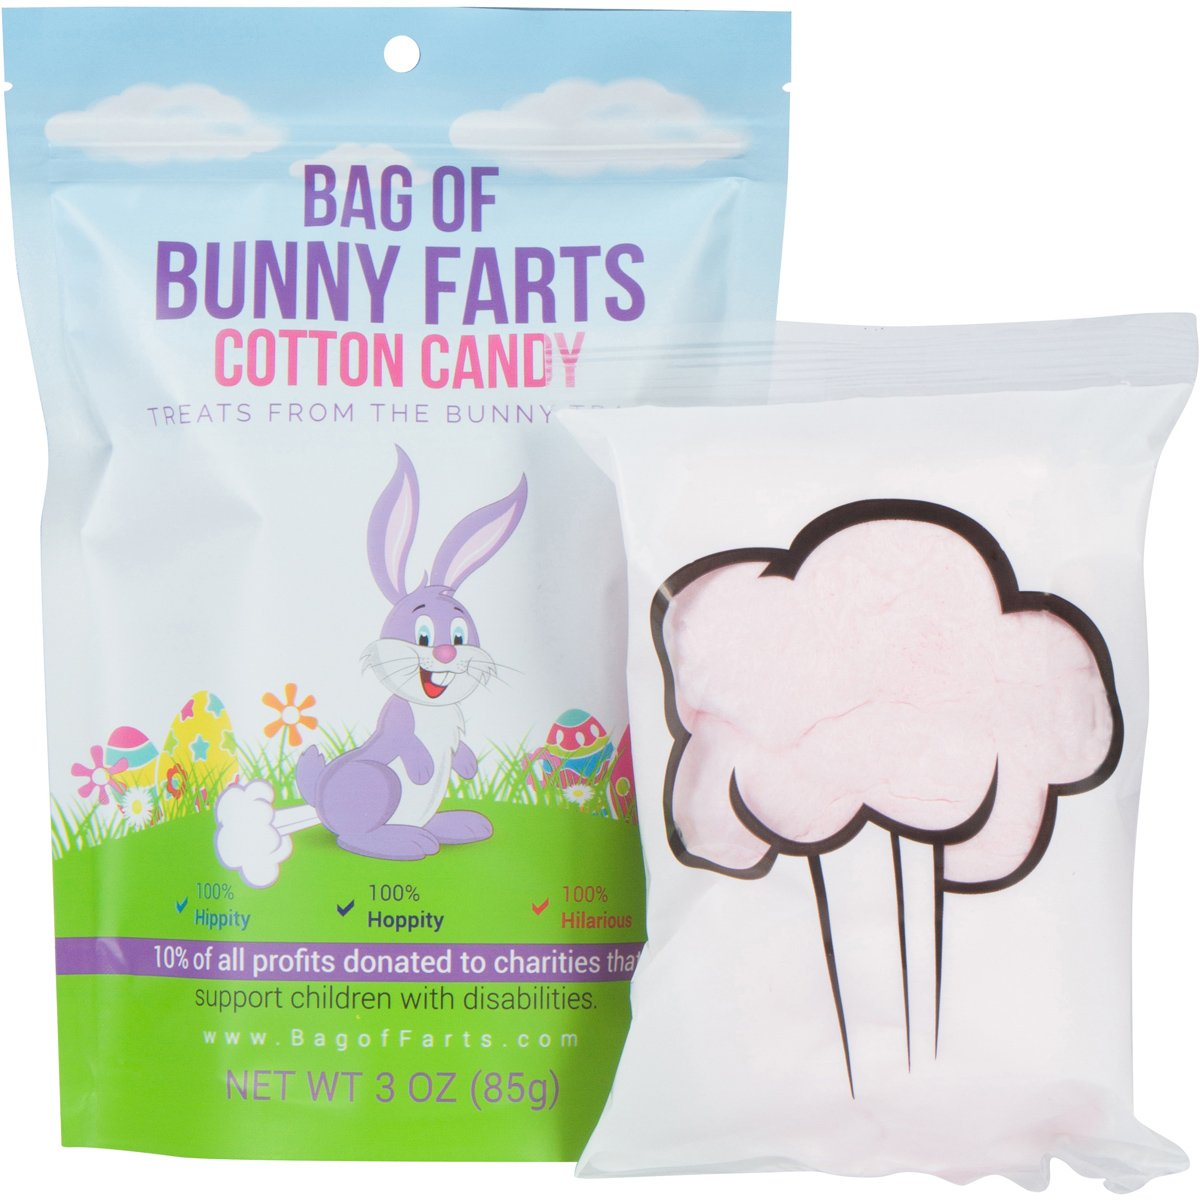 Amazon classic easter gift basket pink premade and bag of farts cotton candy funny for all ages unique birthday gag gift for friends negle Choice Image